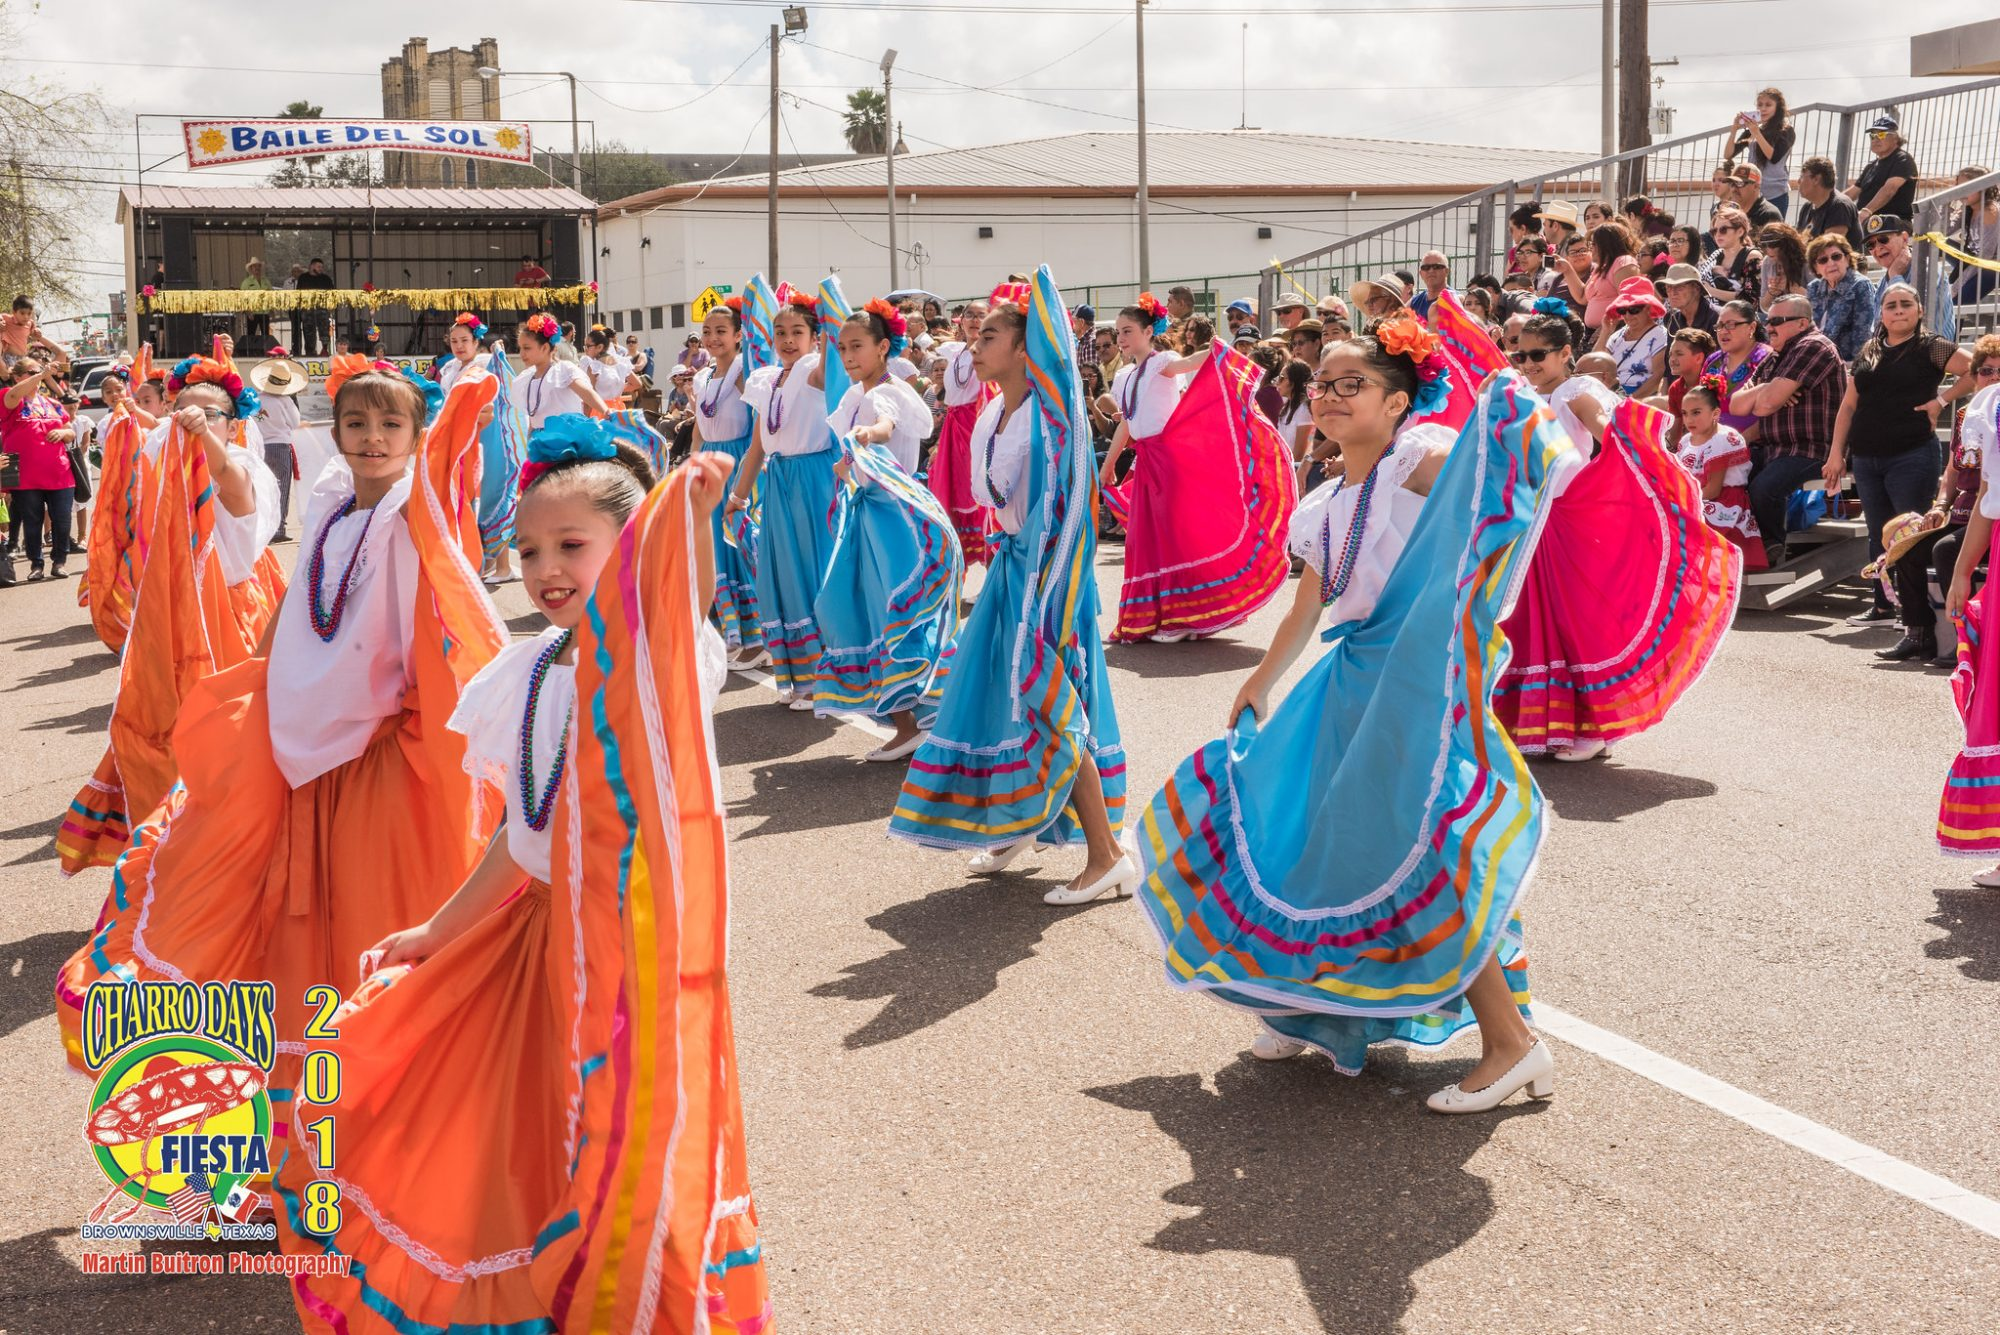 The Charro Days Fiesta in Brownsville, Texas Celebrates Bi-National Unity and Culture